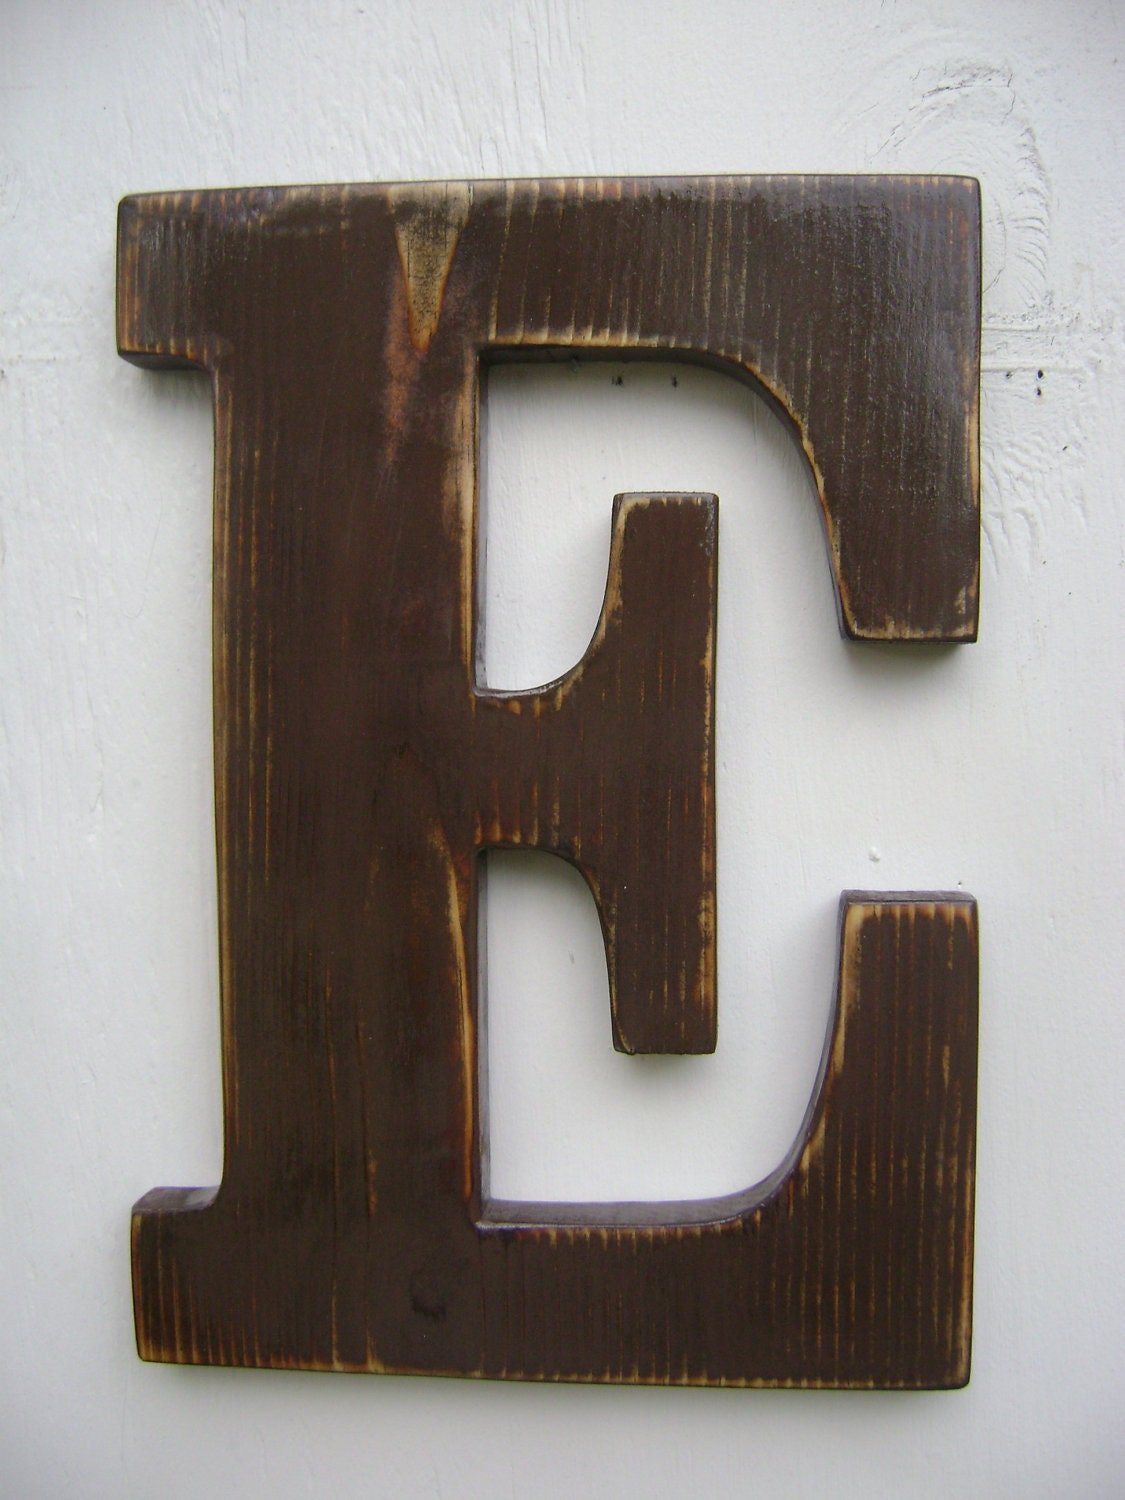 Wall sign rustic wooden letters decor 12 tall 3 4 - Wood letter wall decor ...